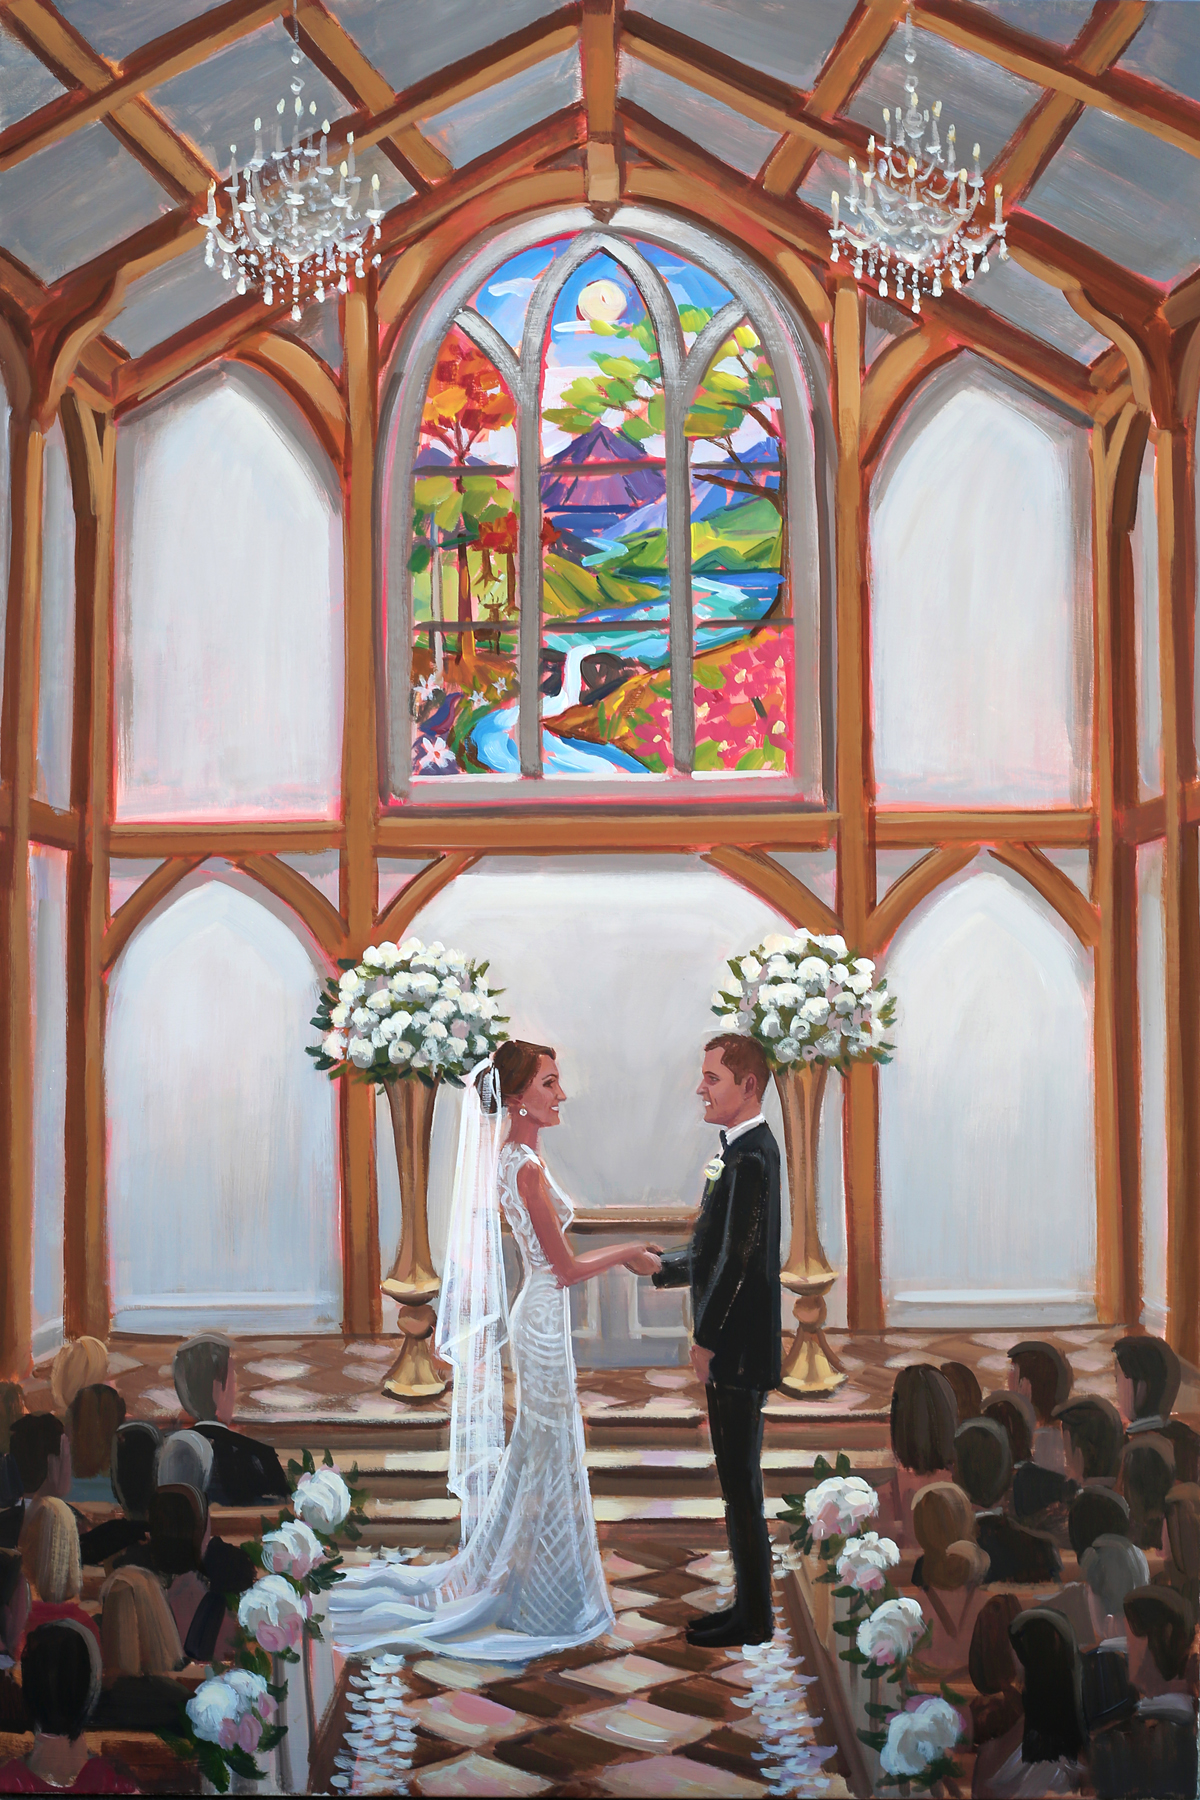 The new Chapel at The Greenbrier is what ceremony dreams are made of … and Ben so loved capturing Stephanie and Mark's sweet moment as they said, I DO, with a live wedding painting!